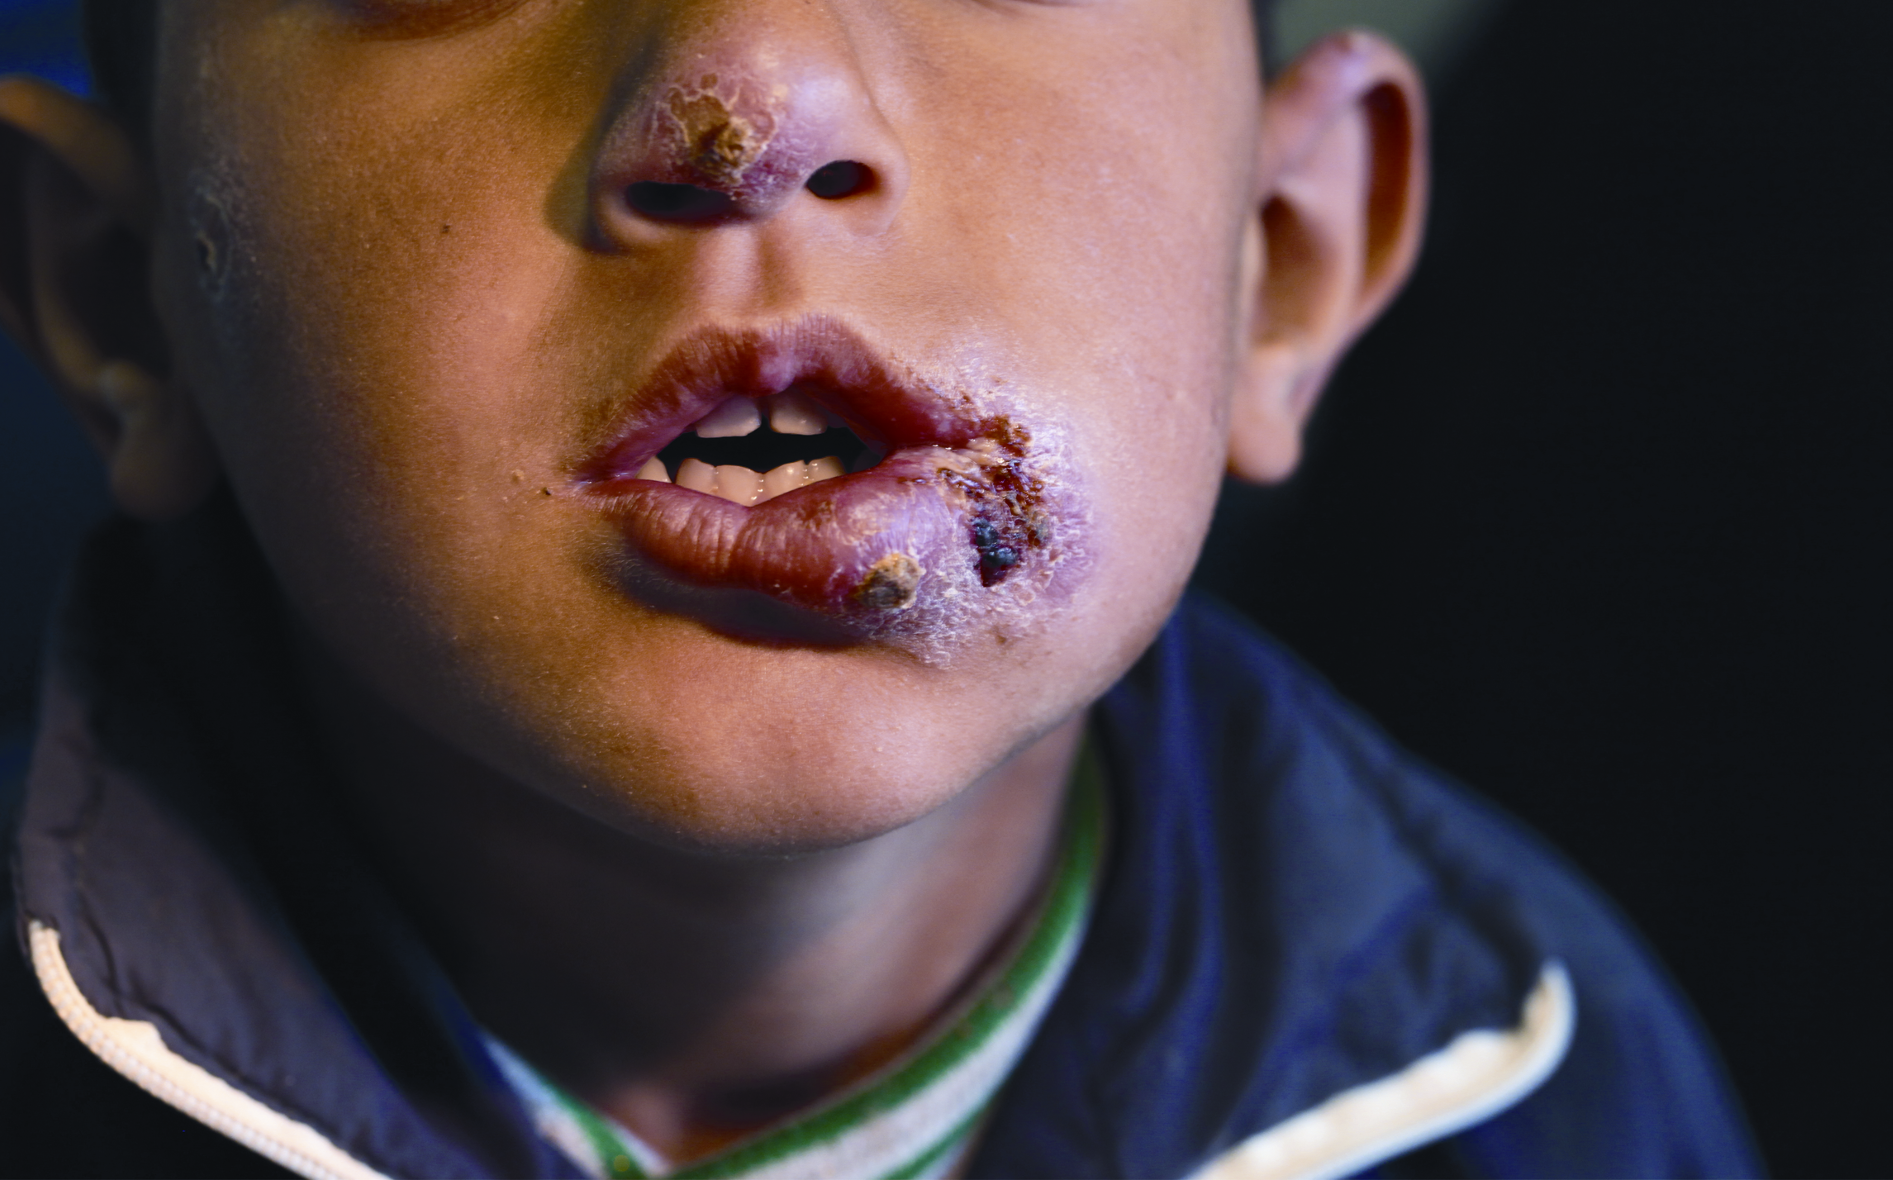 Syrian child from a Lebanon refugee camp, presenting multiple lesions from cutaneous leishmaniasis, courtesy of Dr. Ibrahim Khalifeh